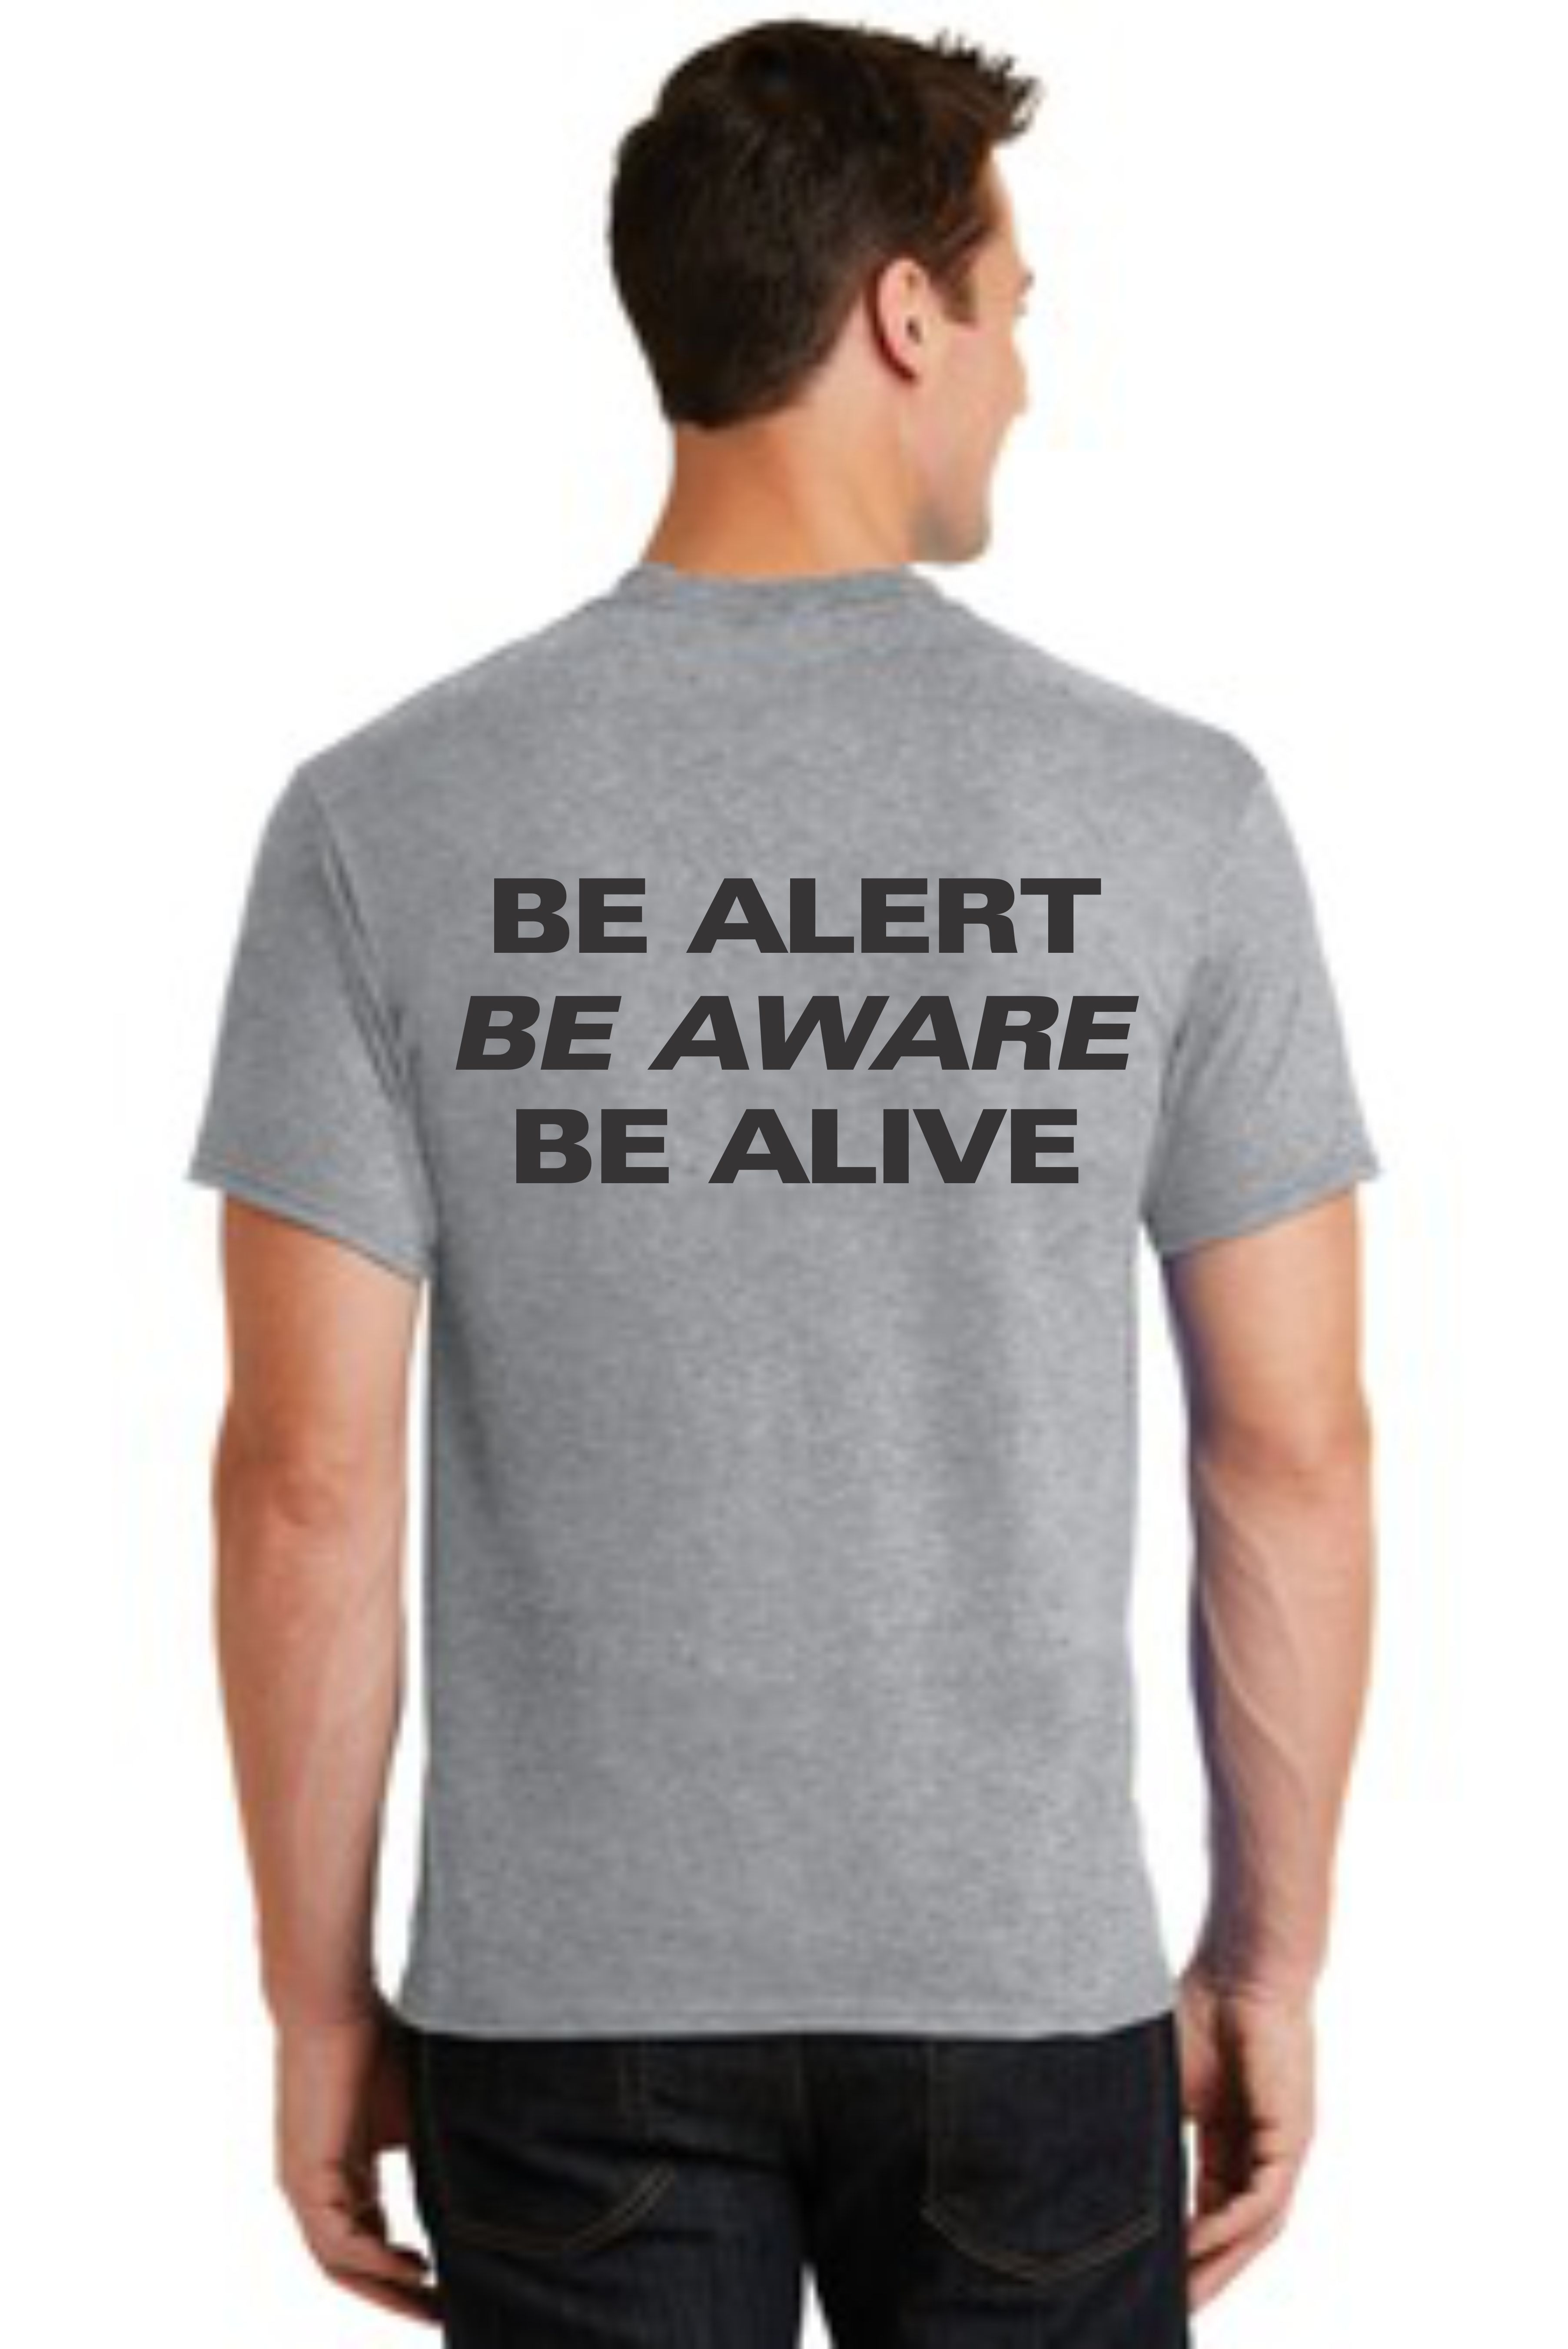 SAFETY T-SHIRT -- BE ALERT BE ALIVE BE AWARE